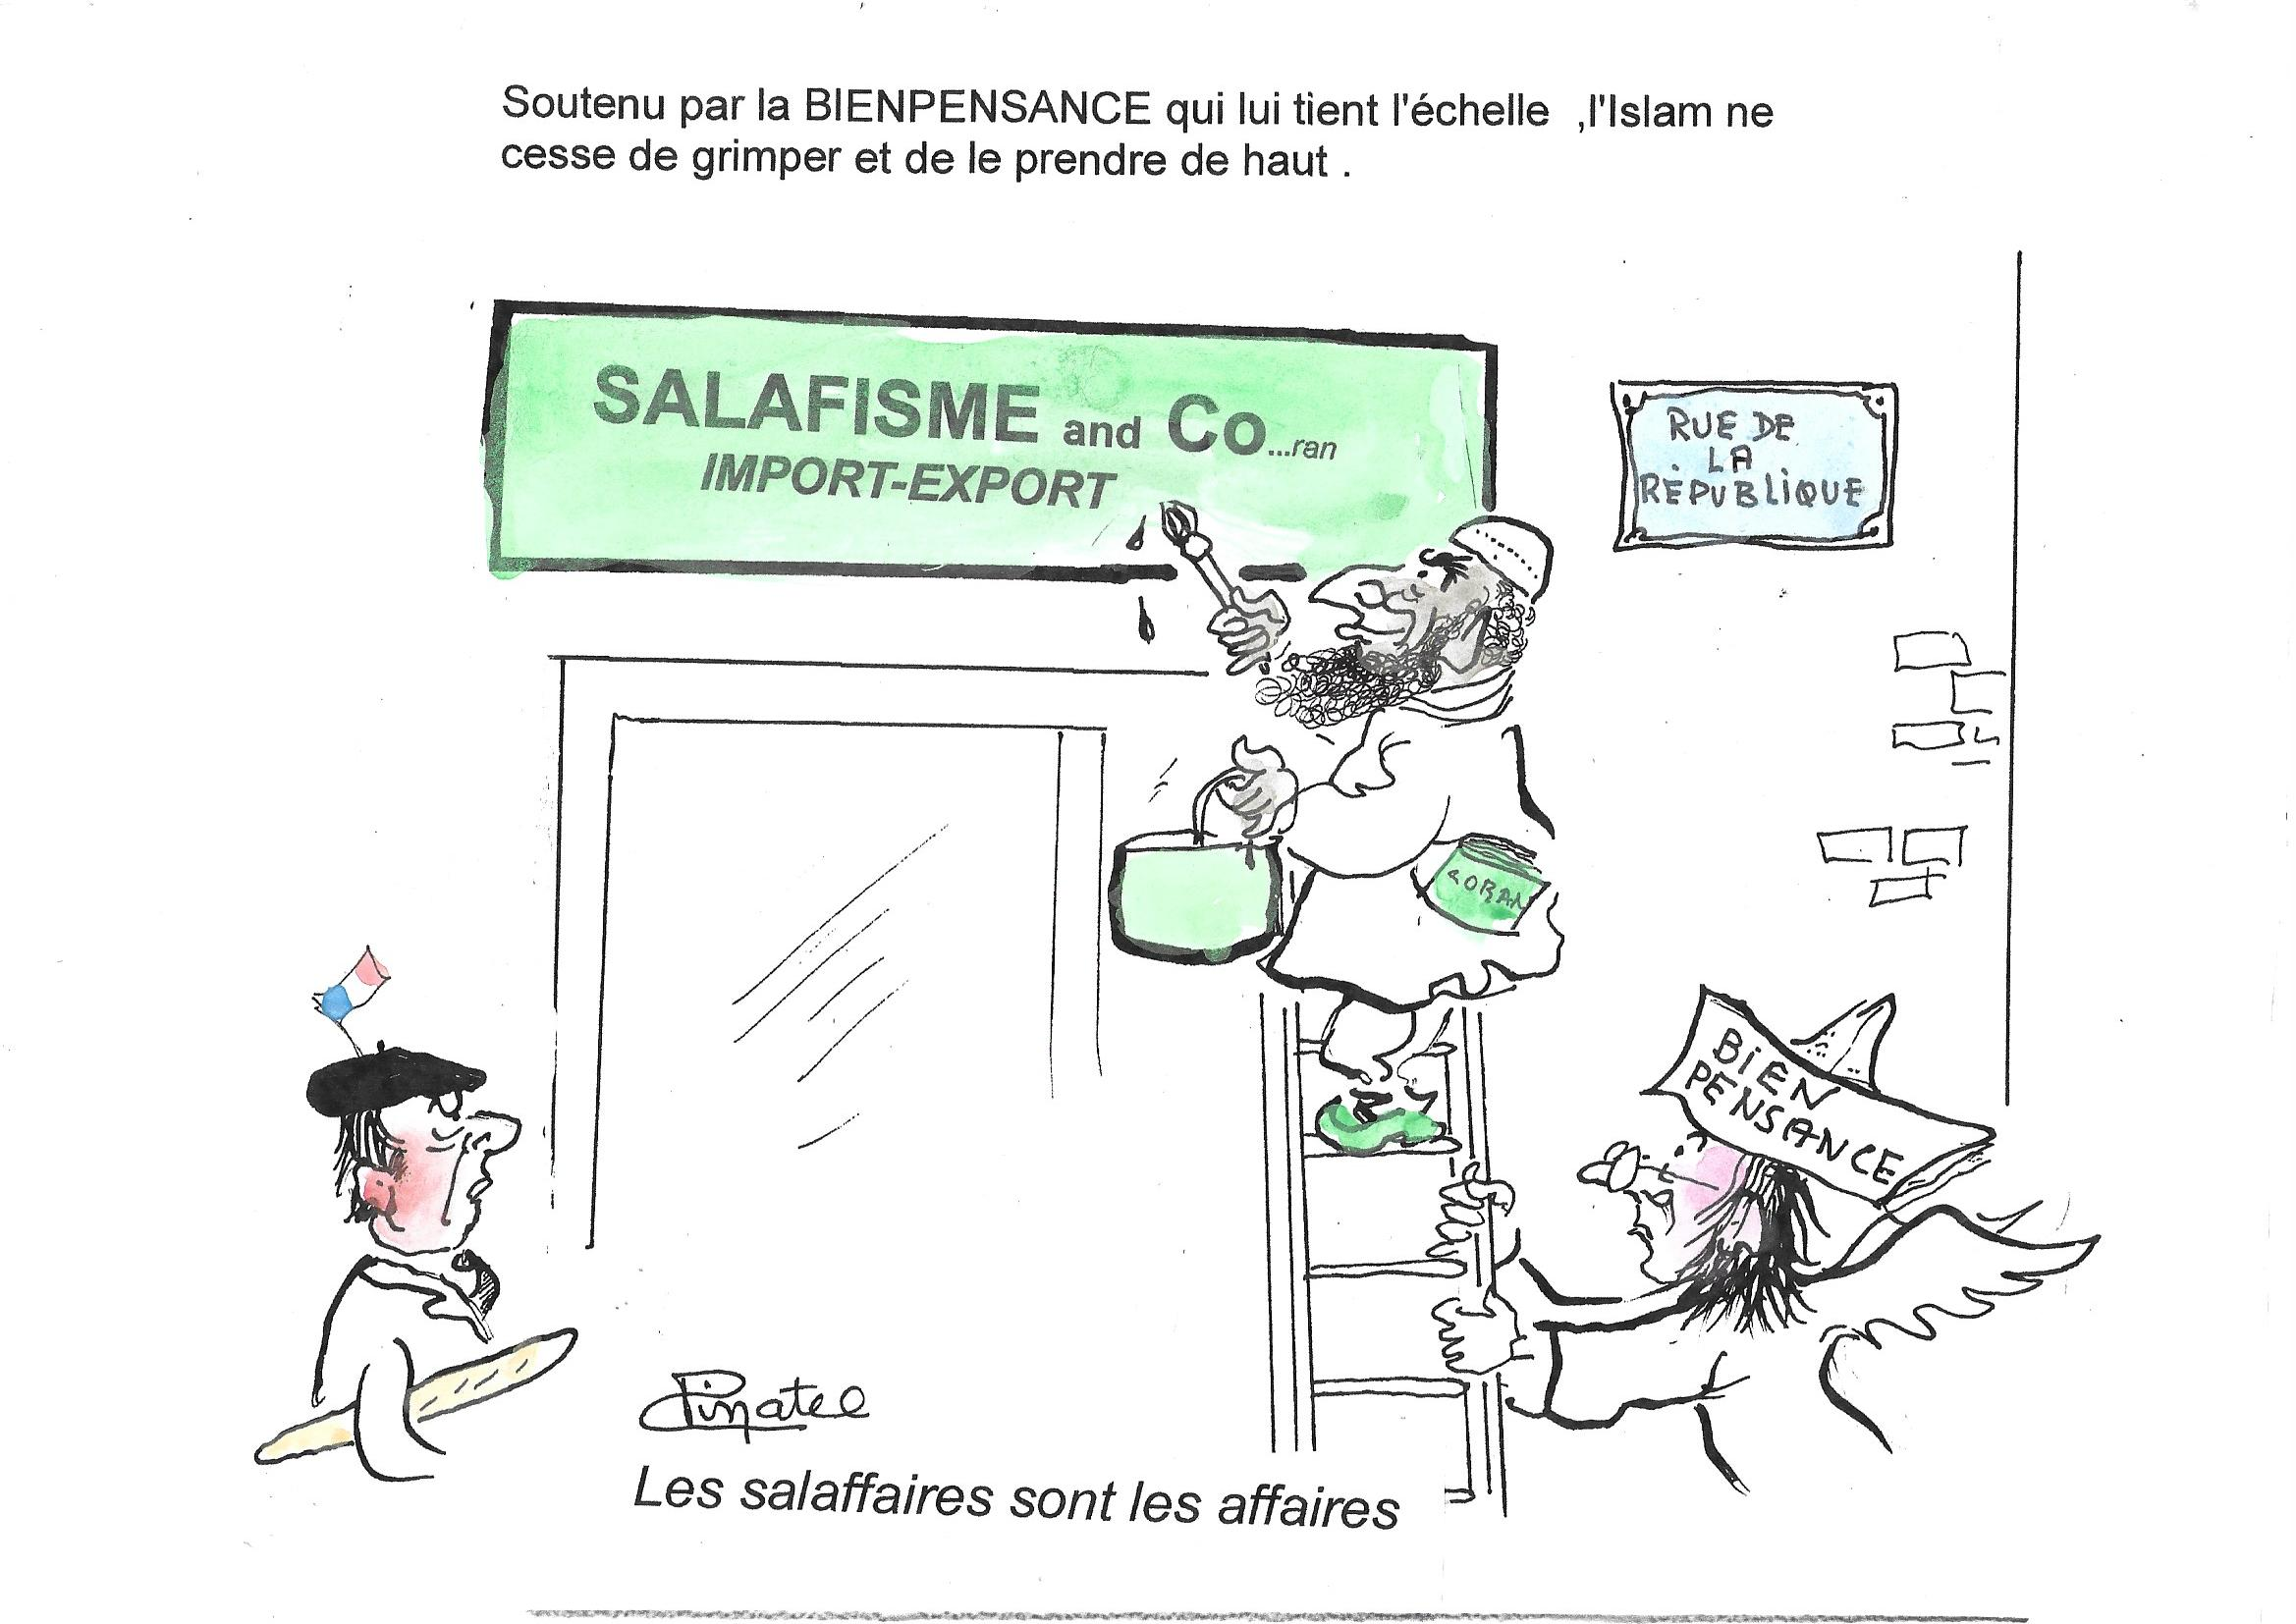 salafisme and co